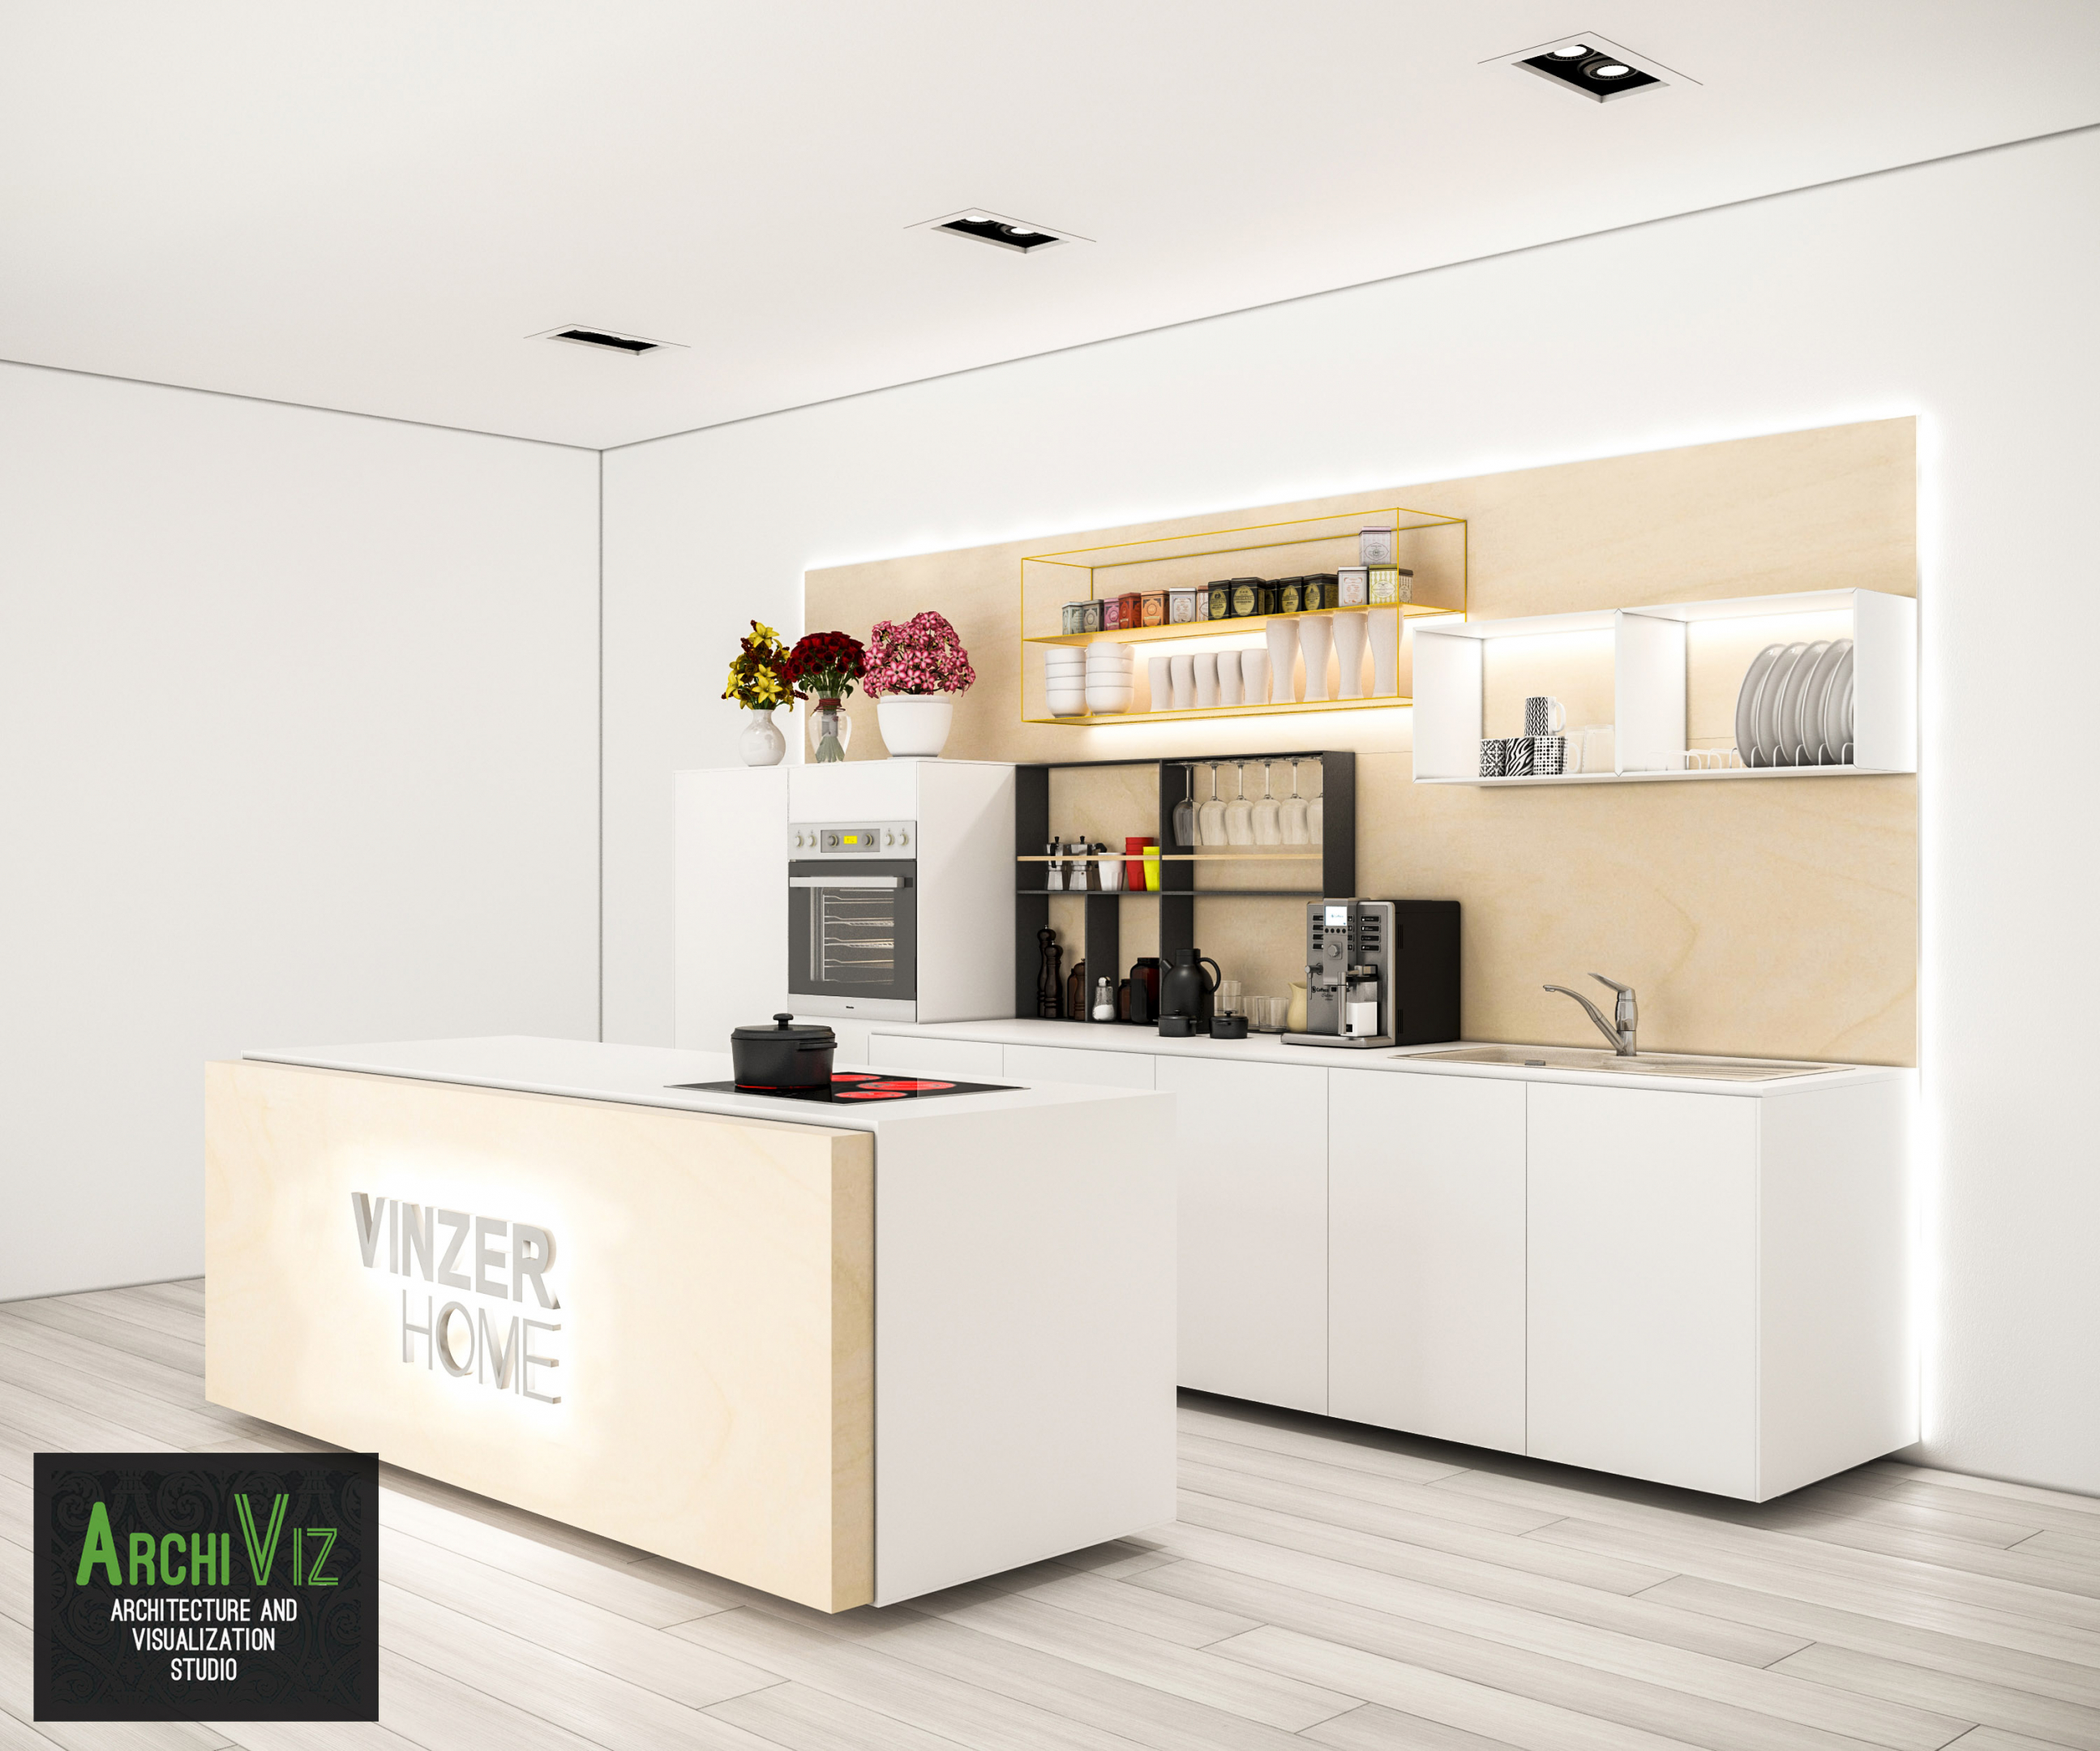 3D visualization of the kitchen with the creation of a new design concept. in 3d max vray 2.0 image